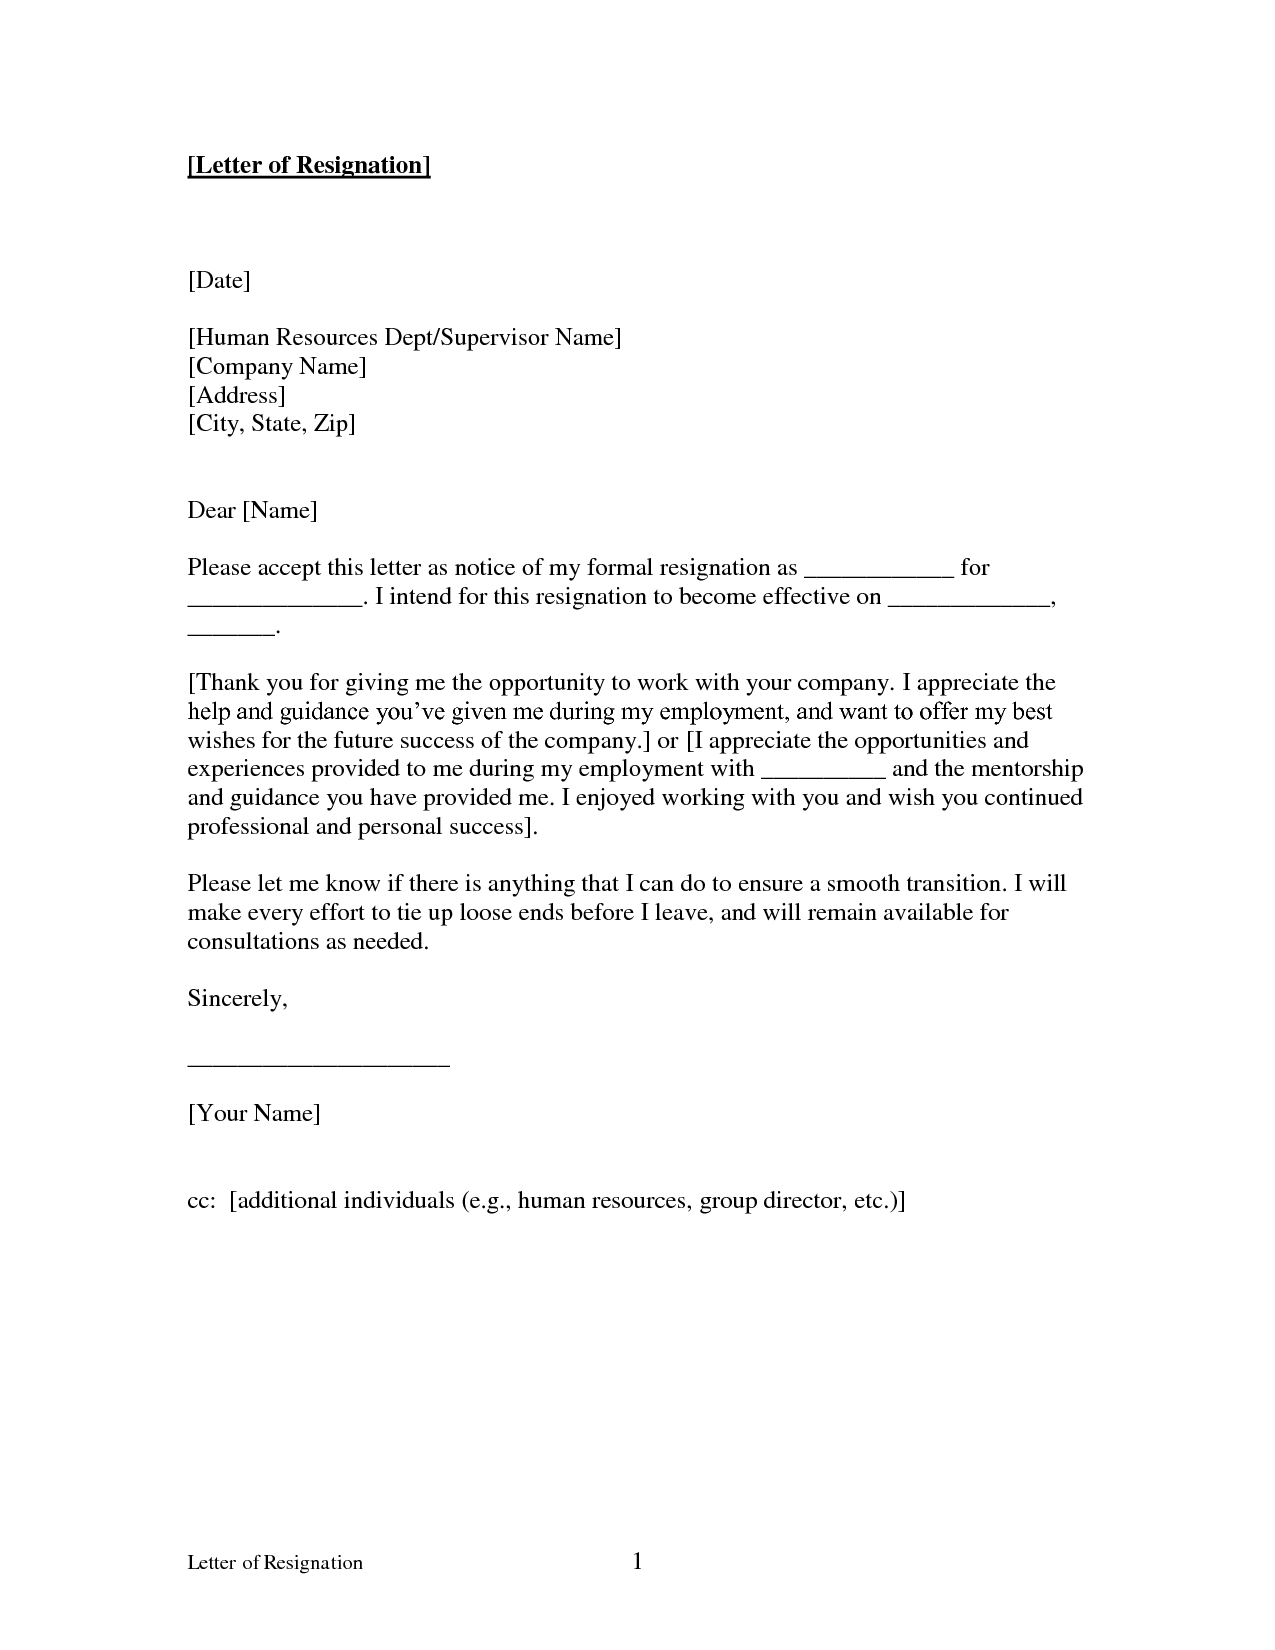 free printable letter of resignation form generic sample